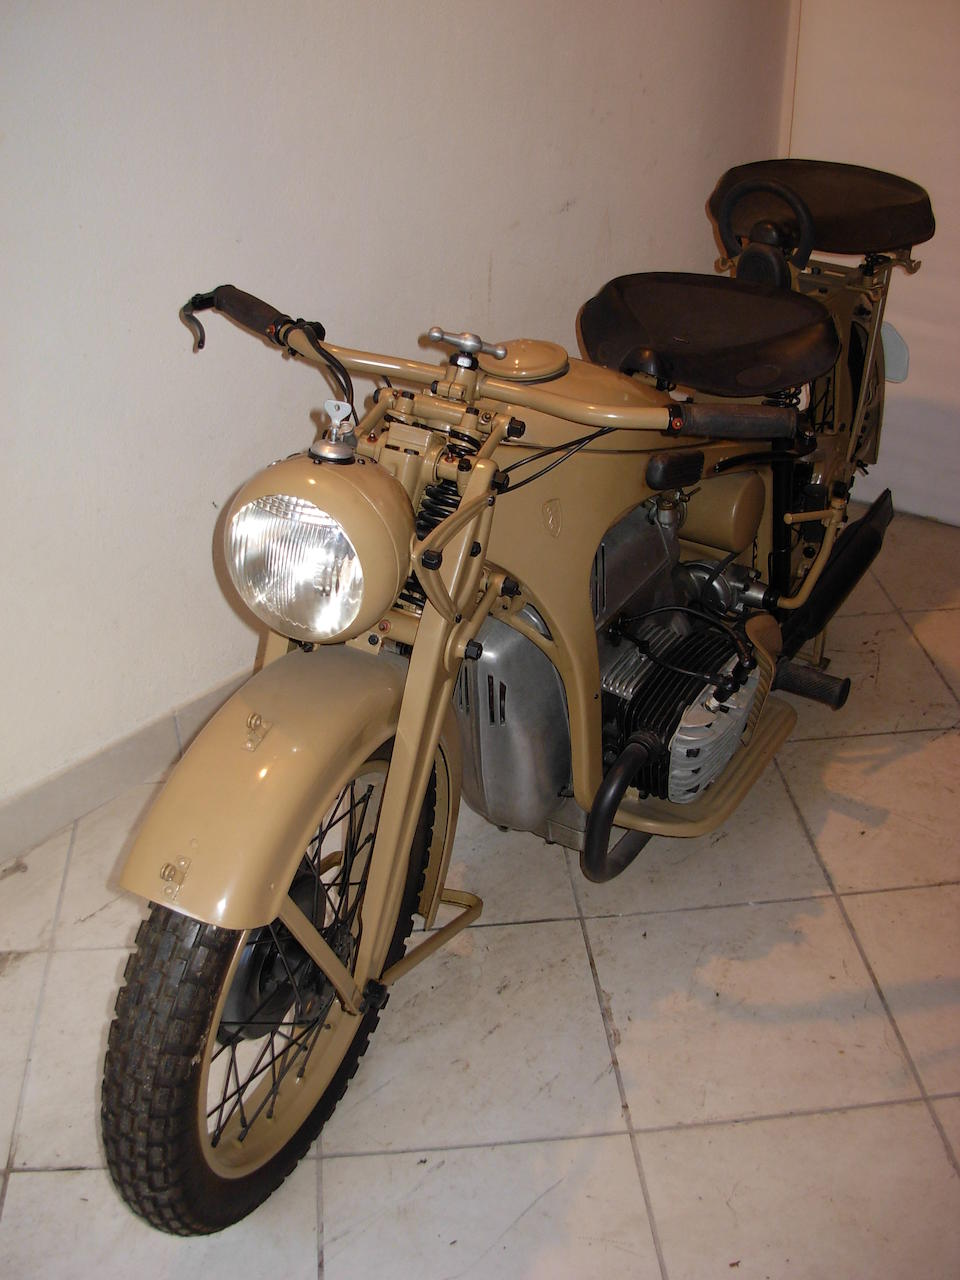 c.1933 Zündapp K800 Military Motorcycle Frame no. to be advised Engine no. 141375